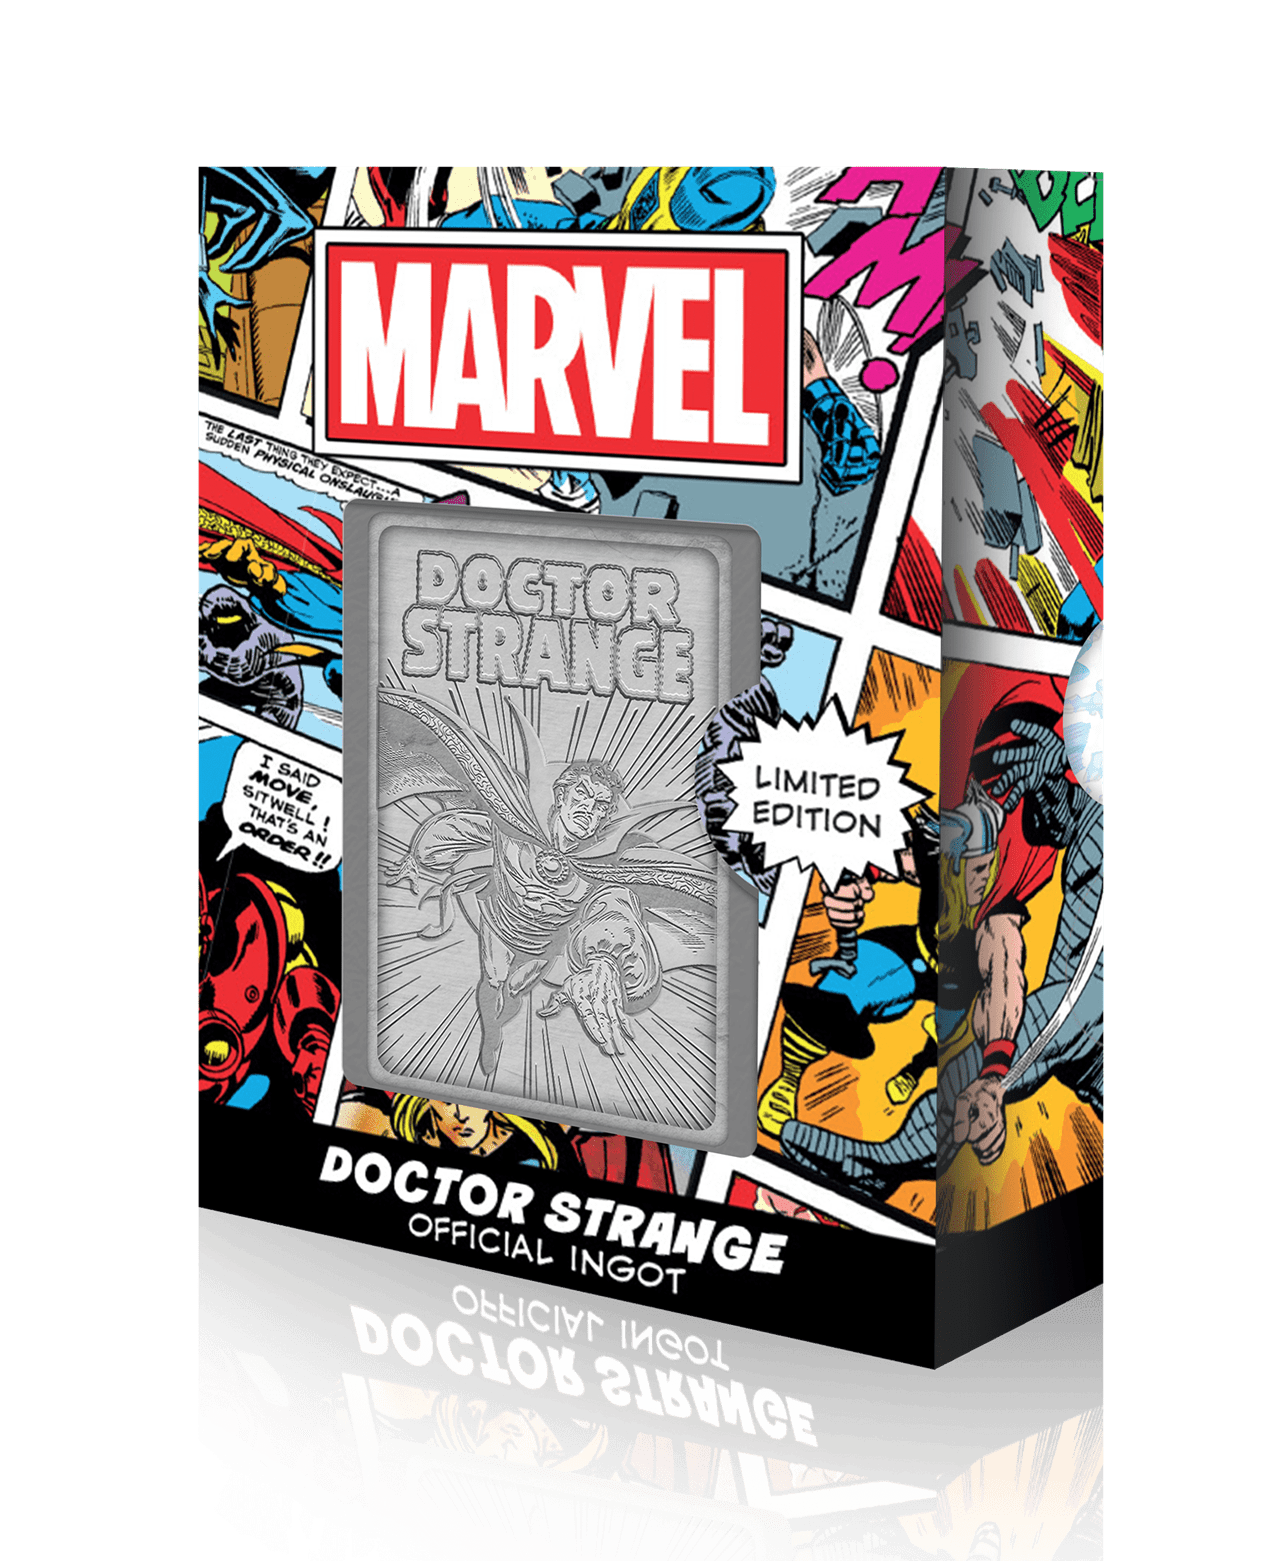 Doctor Strange: Marvel Limited Edition Ingot Collectible - 1